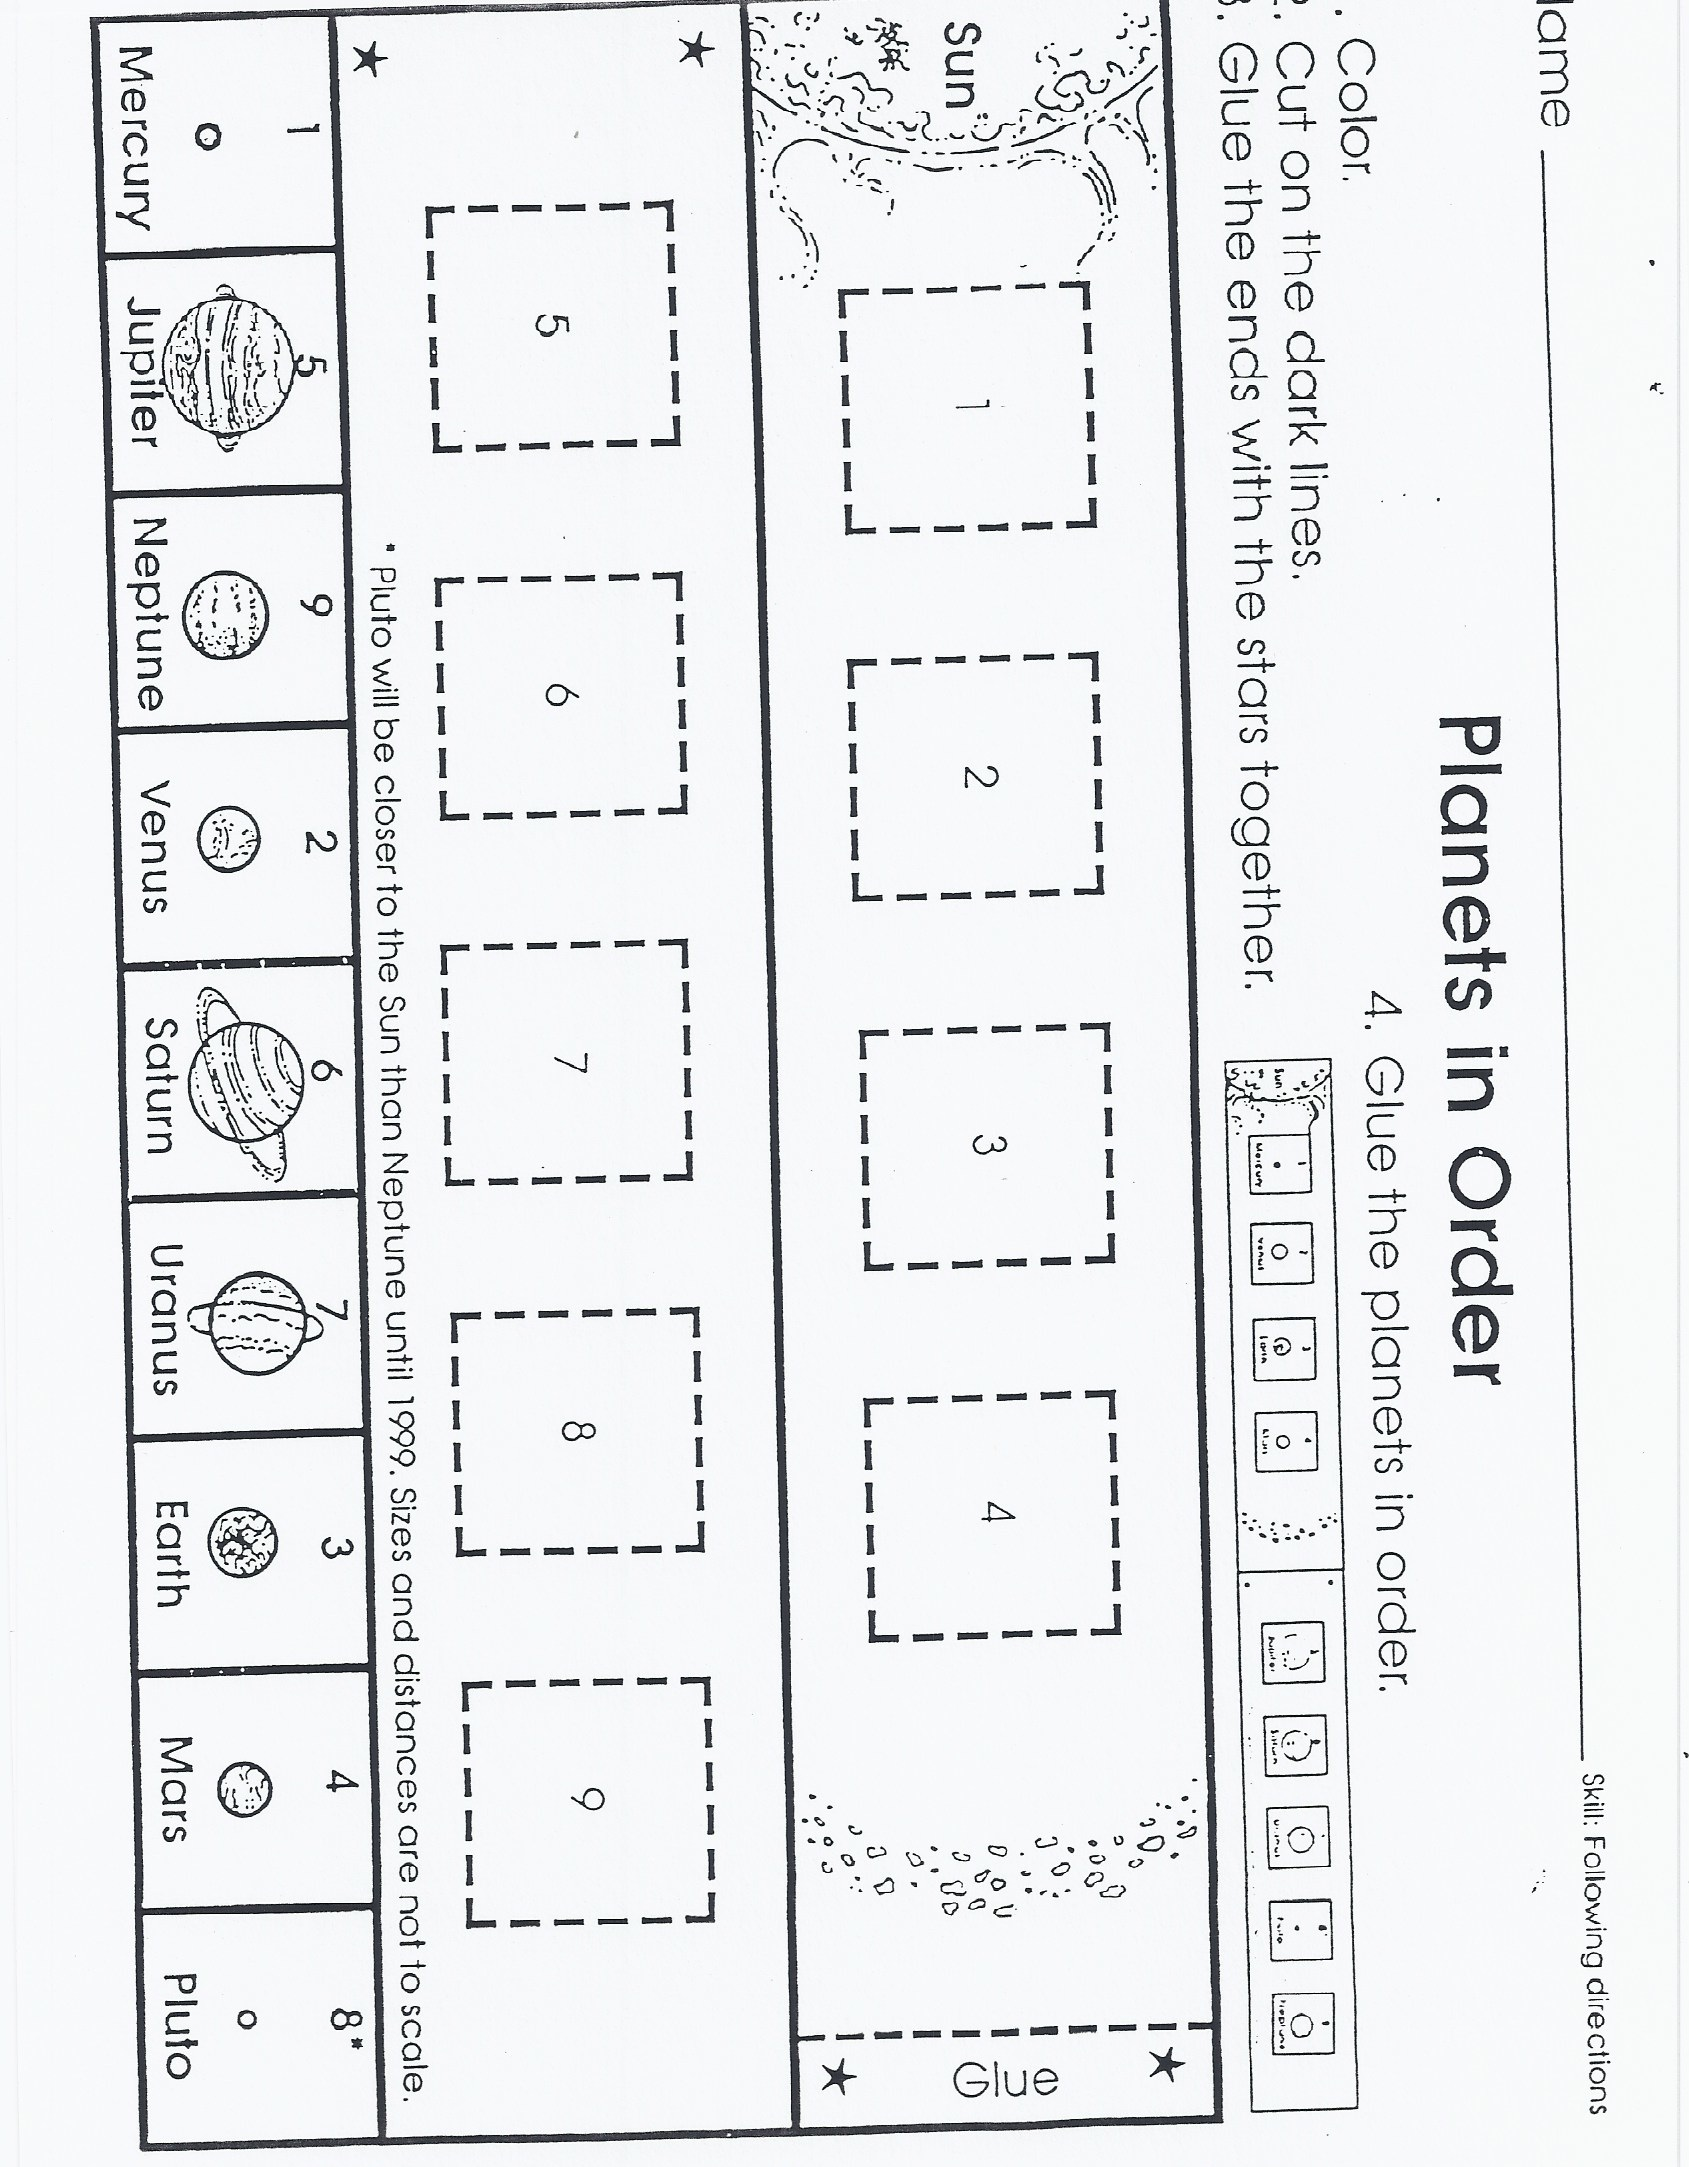 sight word worksheet: NEW 693 FREE CUT AND PASTE SIGHT